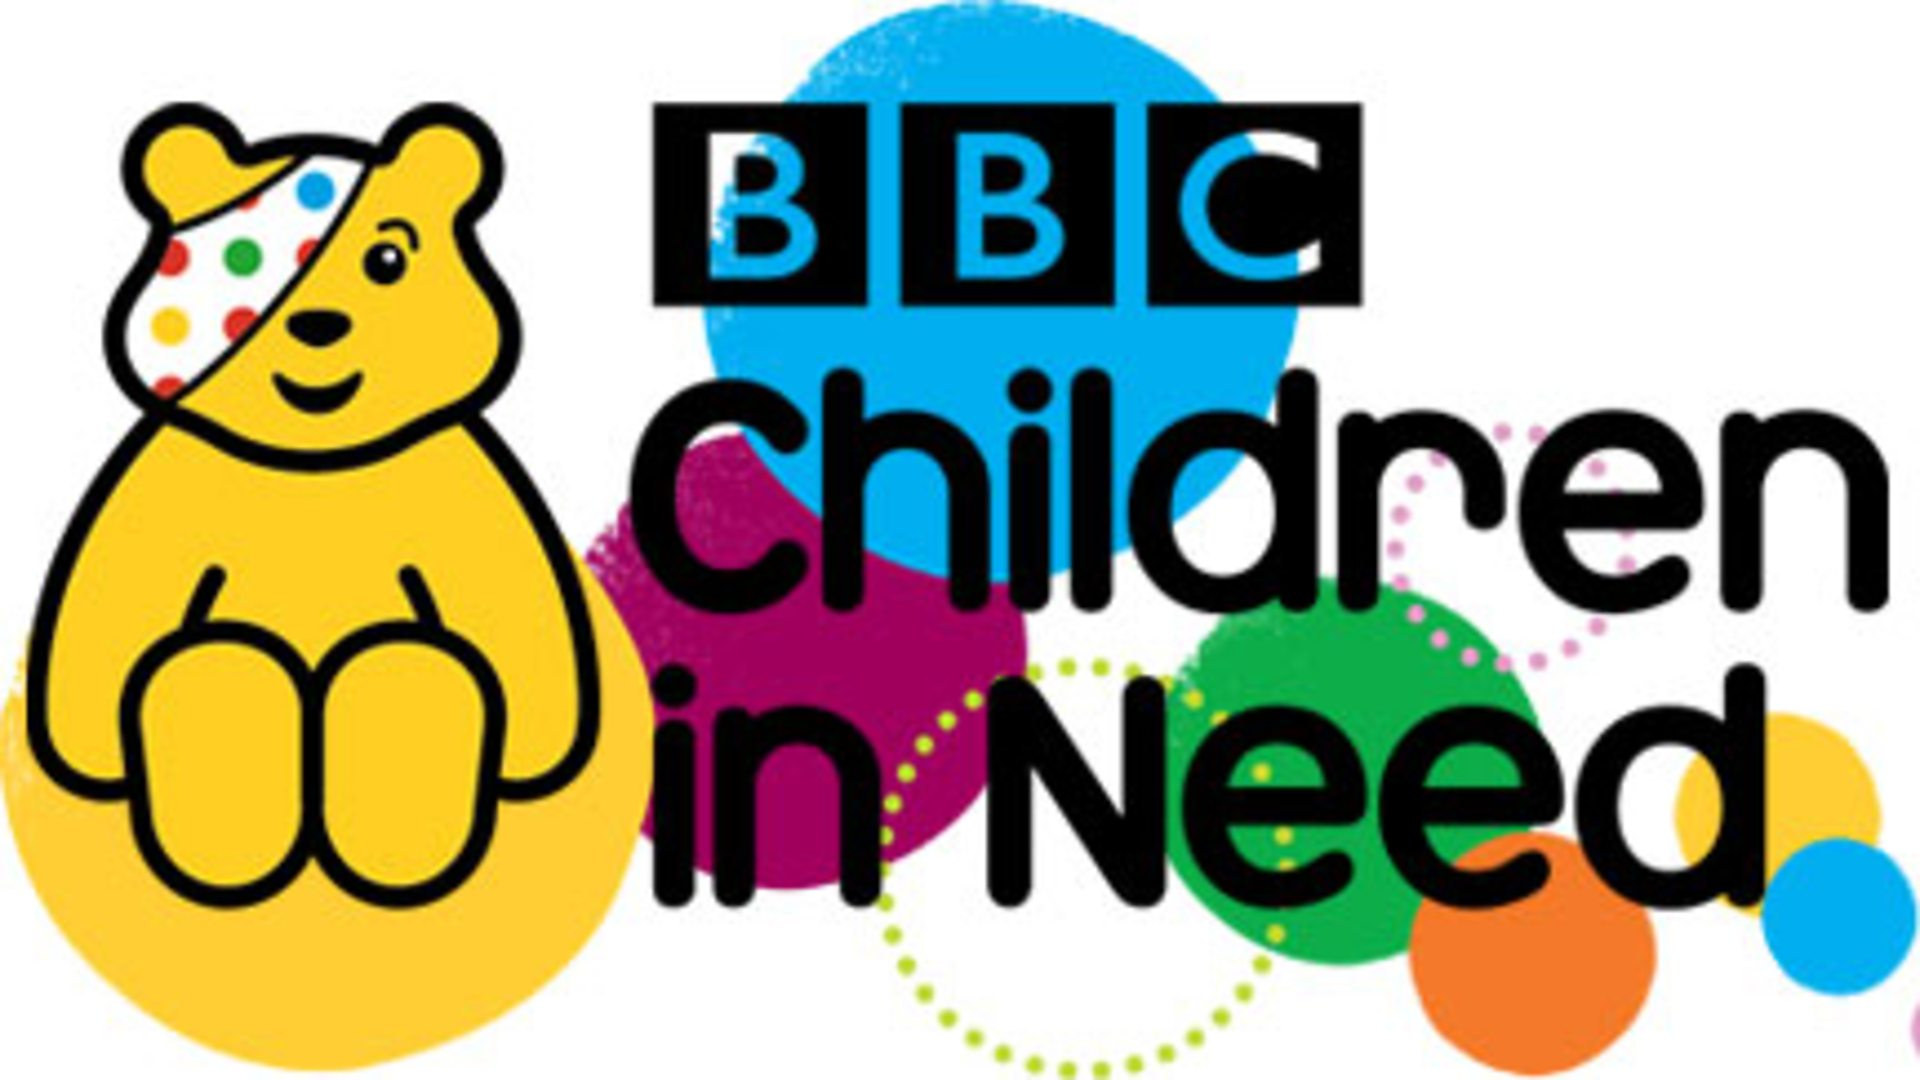 We're supporting BBC Children In Need 2019 - Woodborough Primary School